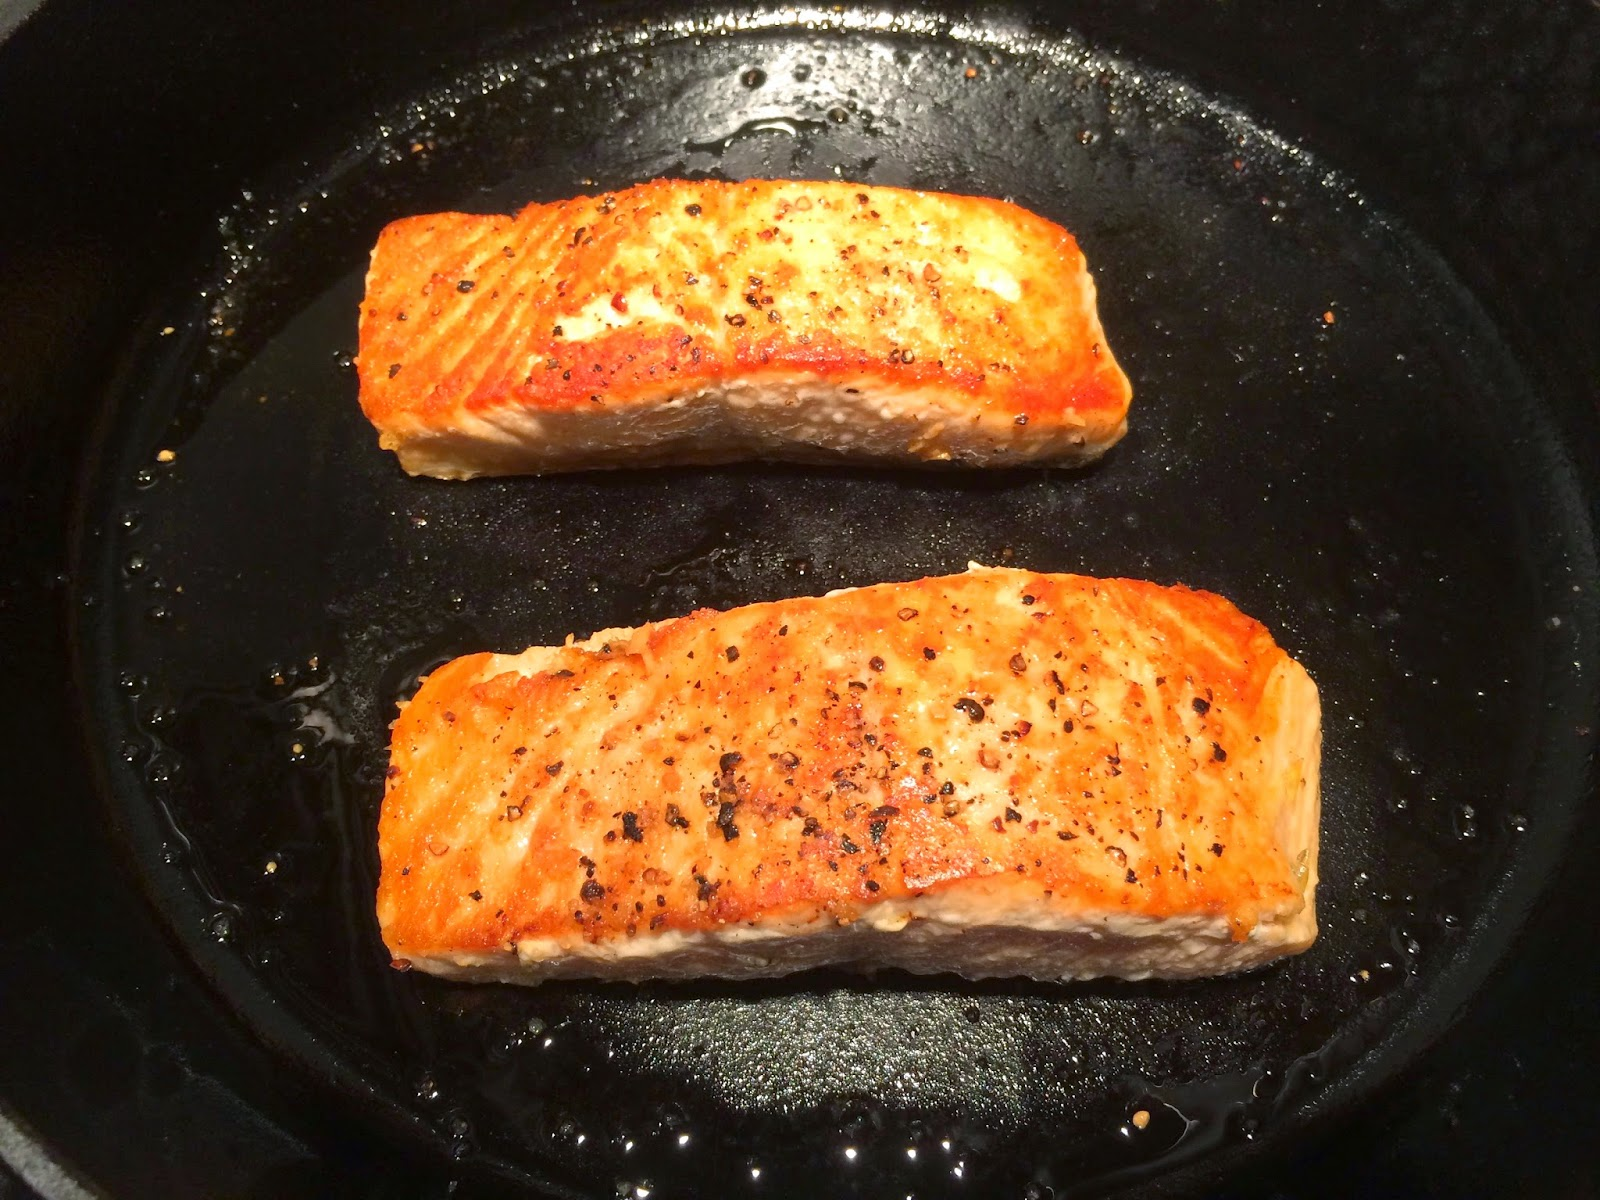 Warm The Oil In Large Cast Iron Skillet Over Very High Heat Season The  Salmon With Salt And Pepper When The Pan Is Very Hot, Place The Salmon  Skin Side Up